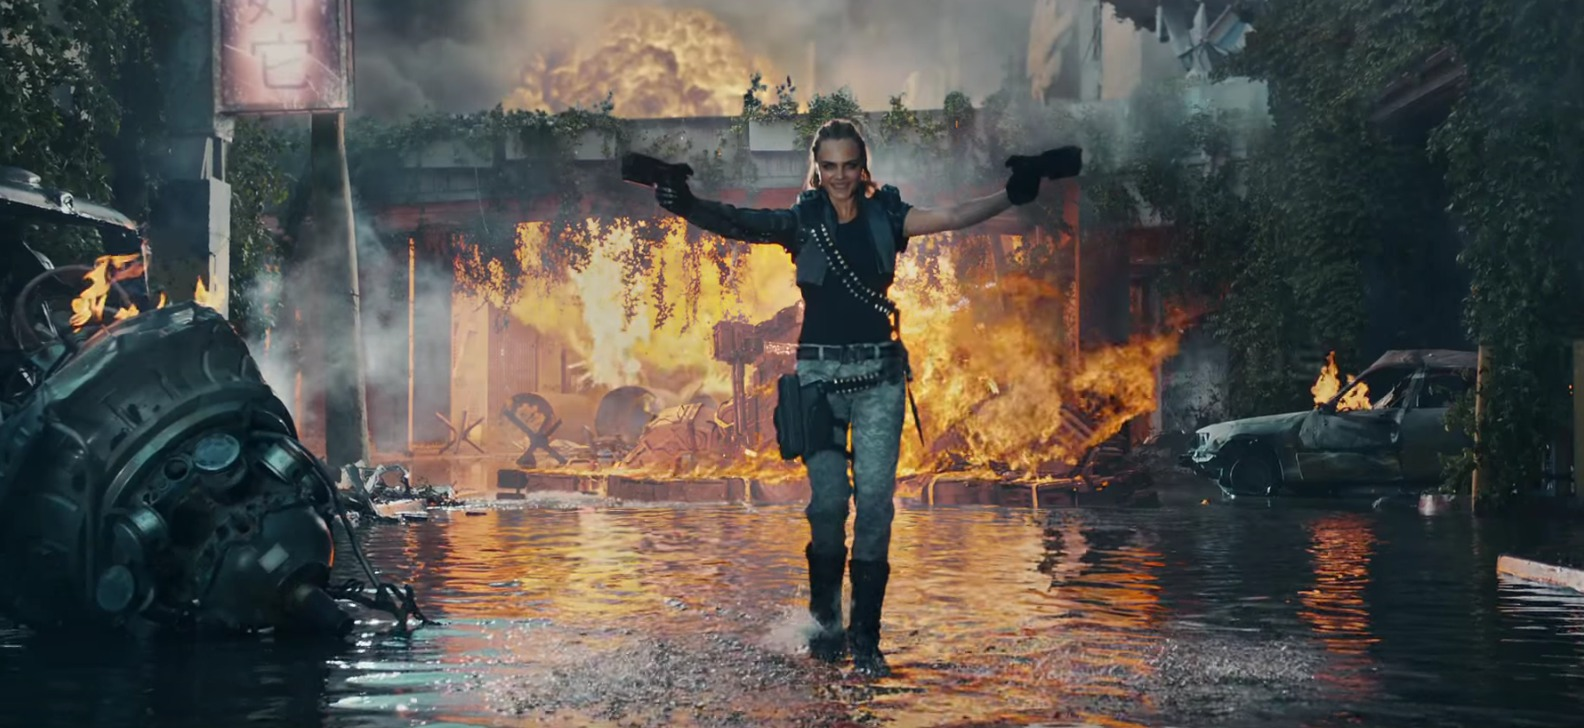 Picture of Cara Delevingne in Call of Duty Trailer